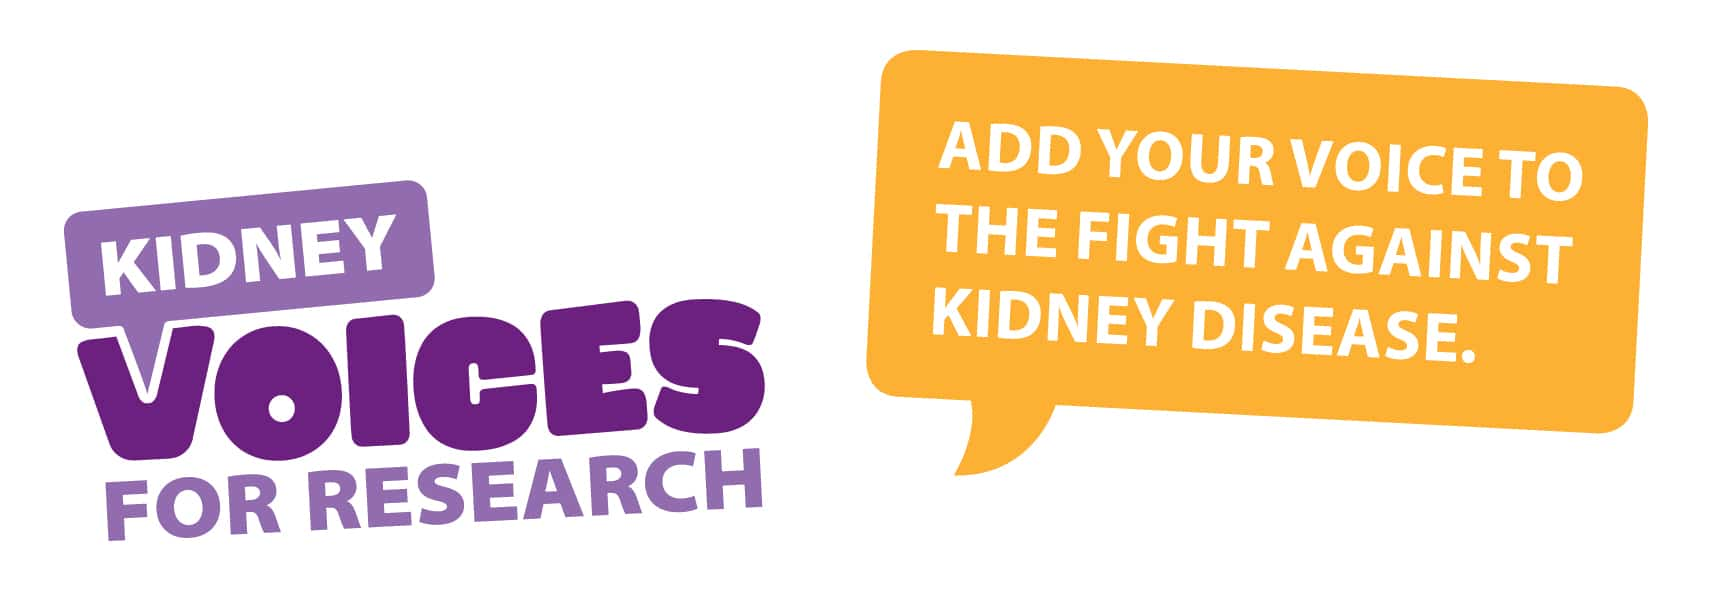 Kidney voices for research